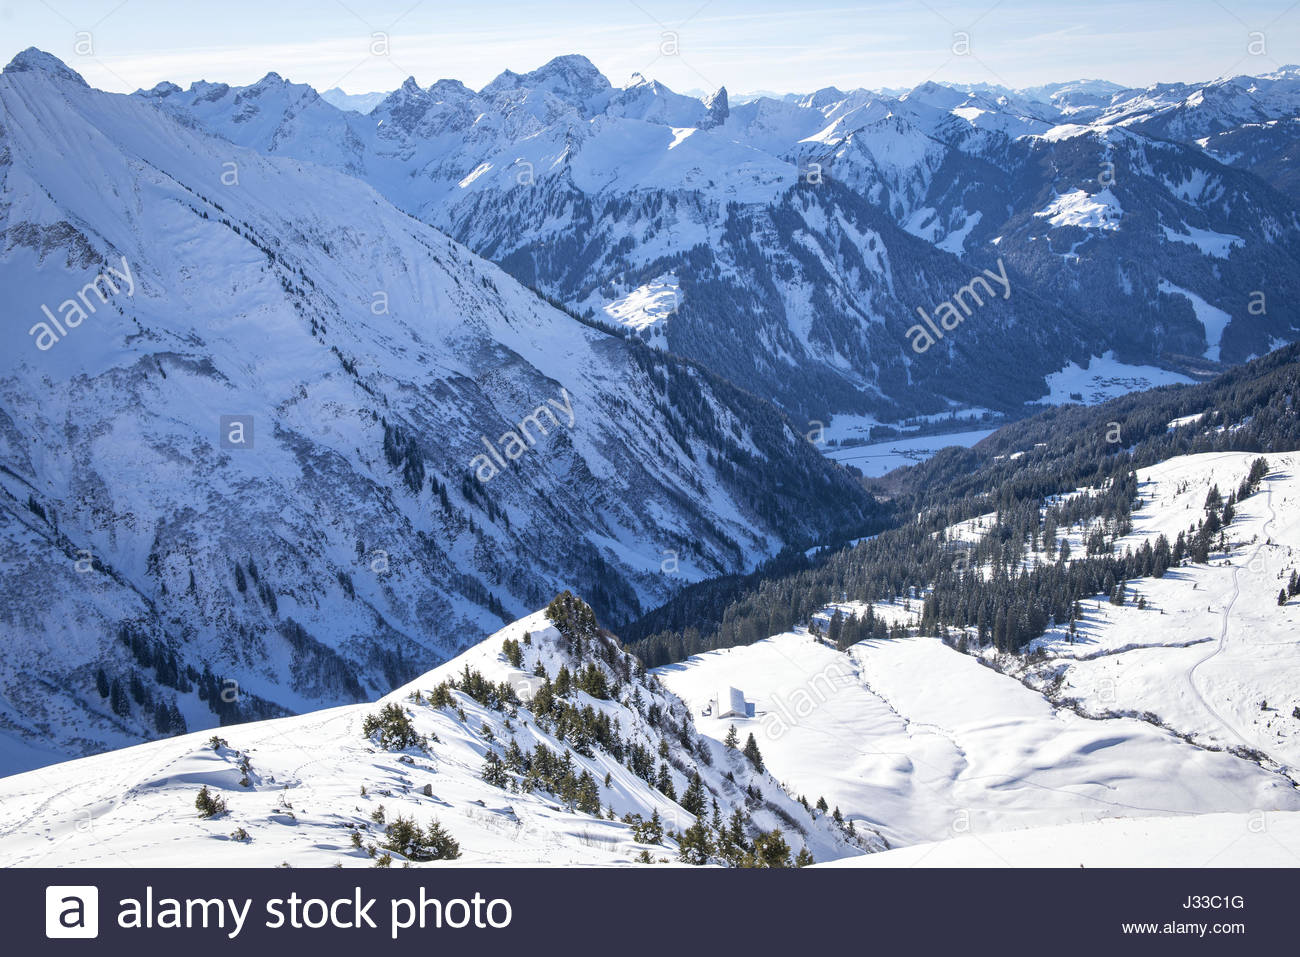 View to the Schwarzwasser valley in winter, sunny and snowy winter landscape, Vorarlberg, Austria - Stock Image